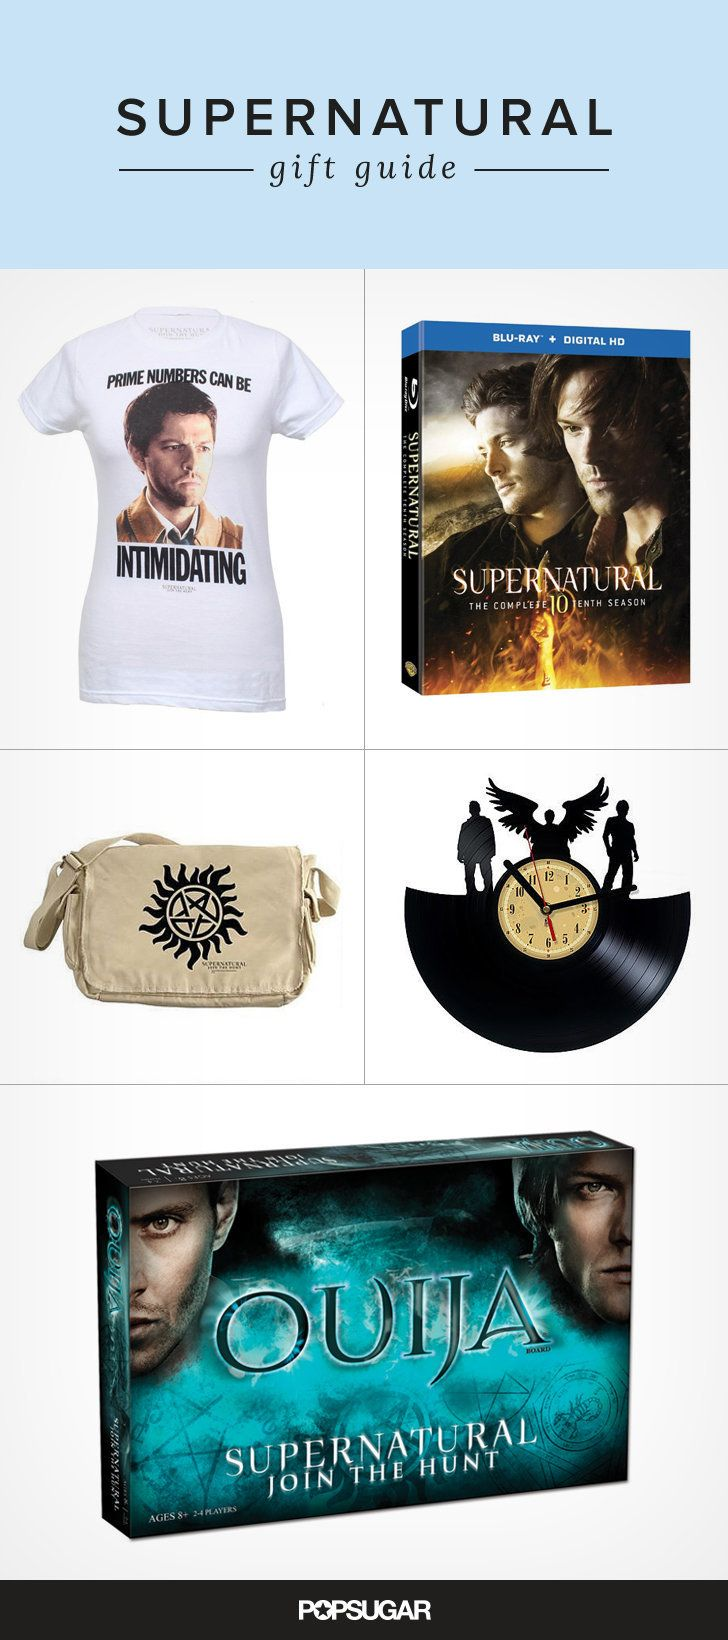 Love Supernatural? You may want some of these gifts for yourself!